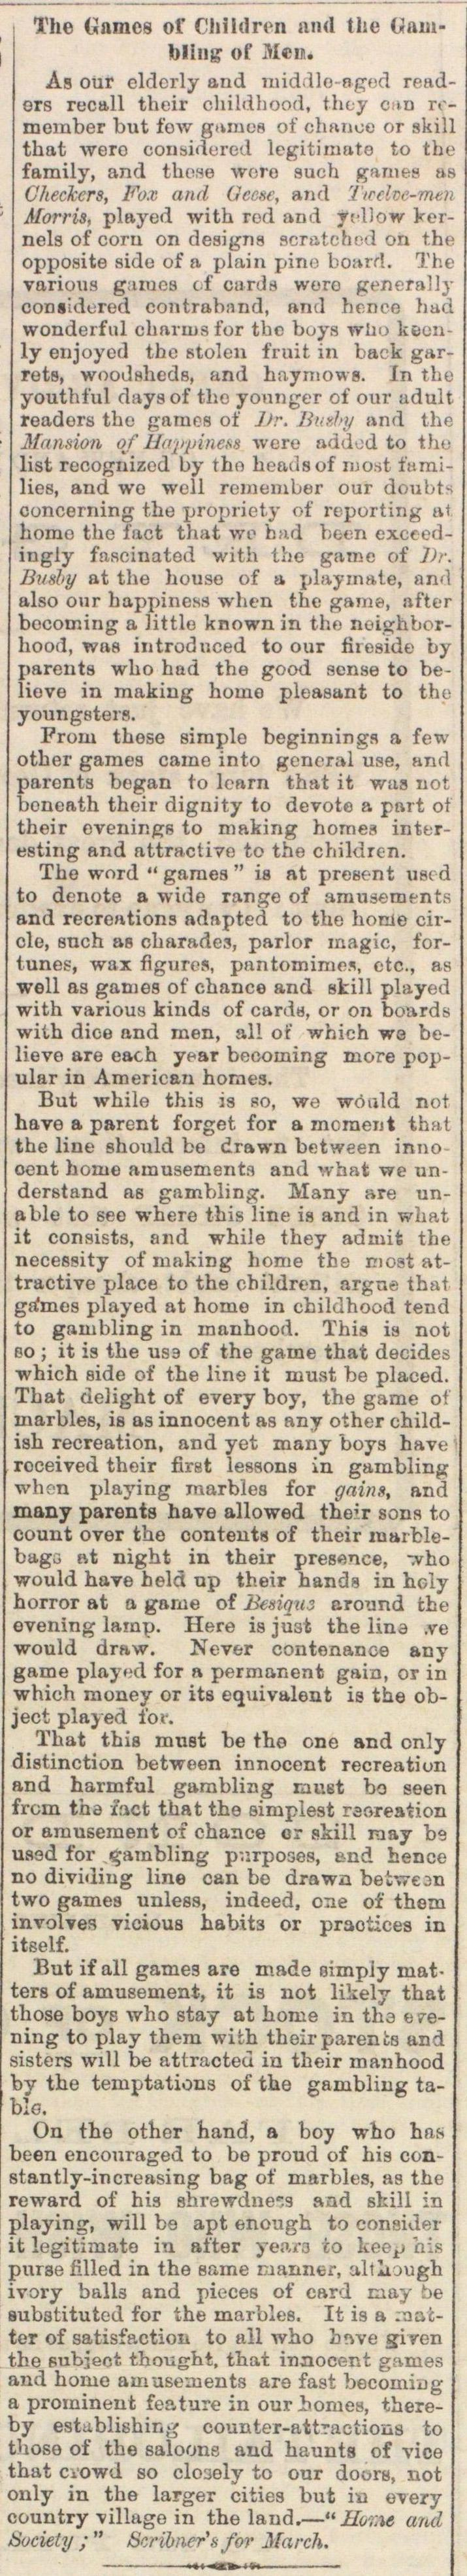 The Games Of Children And The Gambling Of Men image